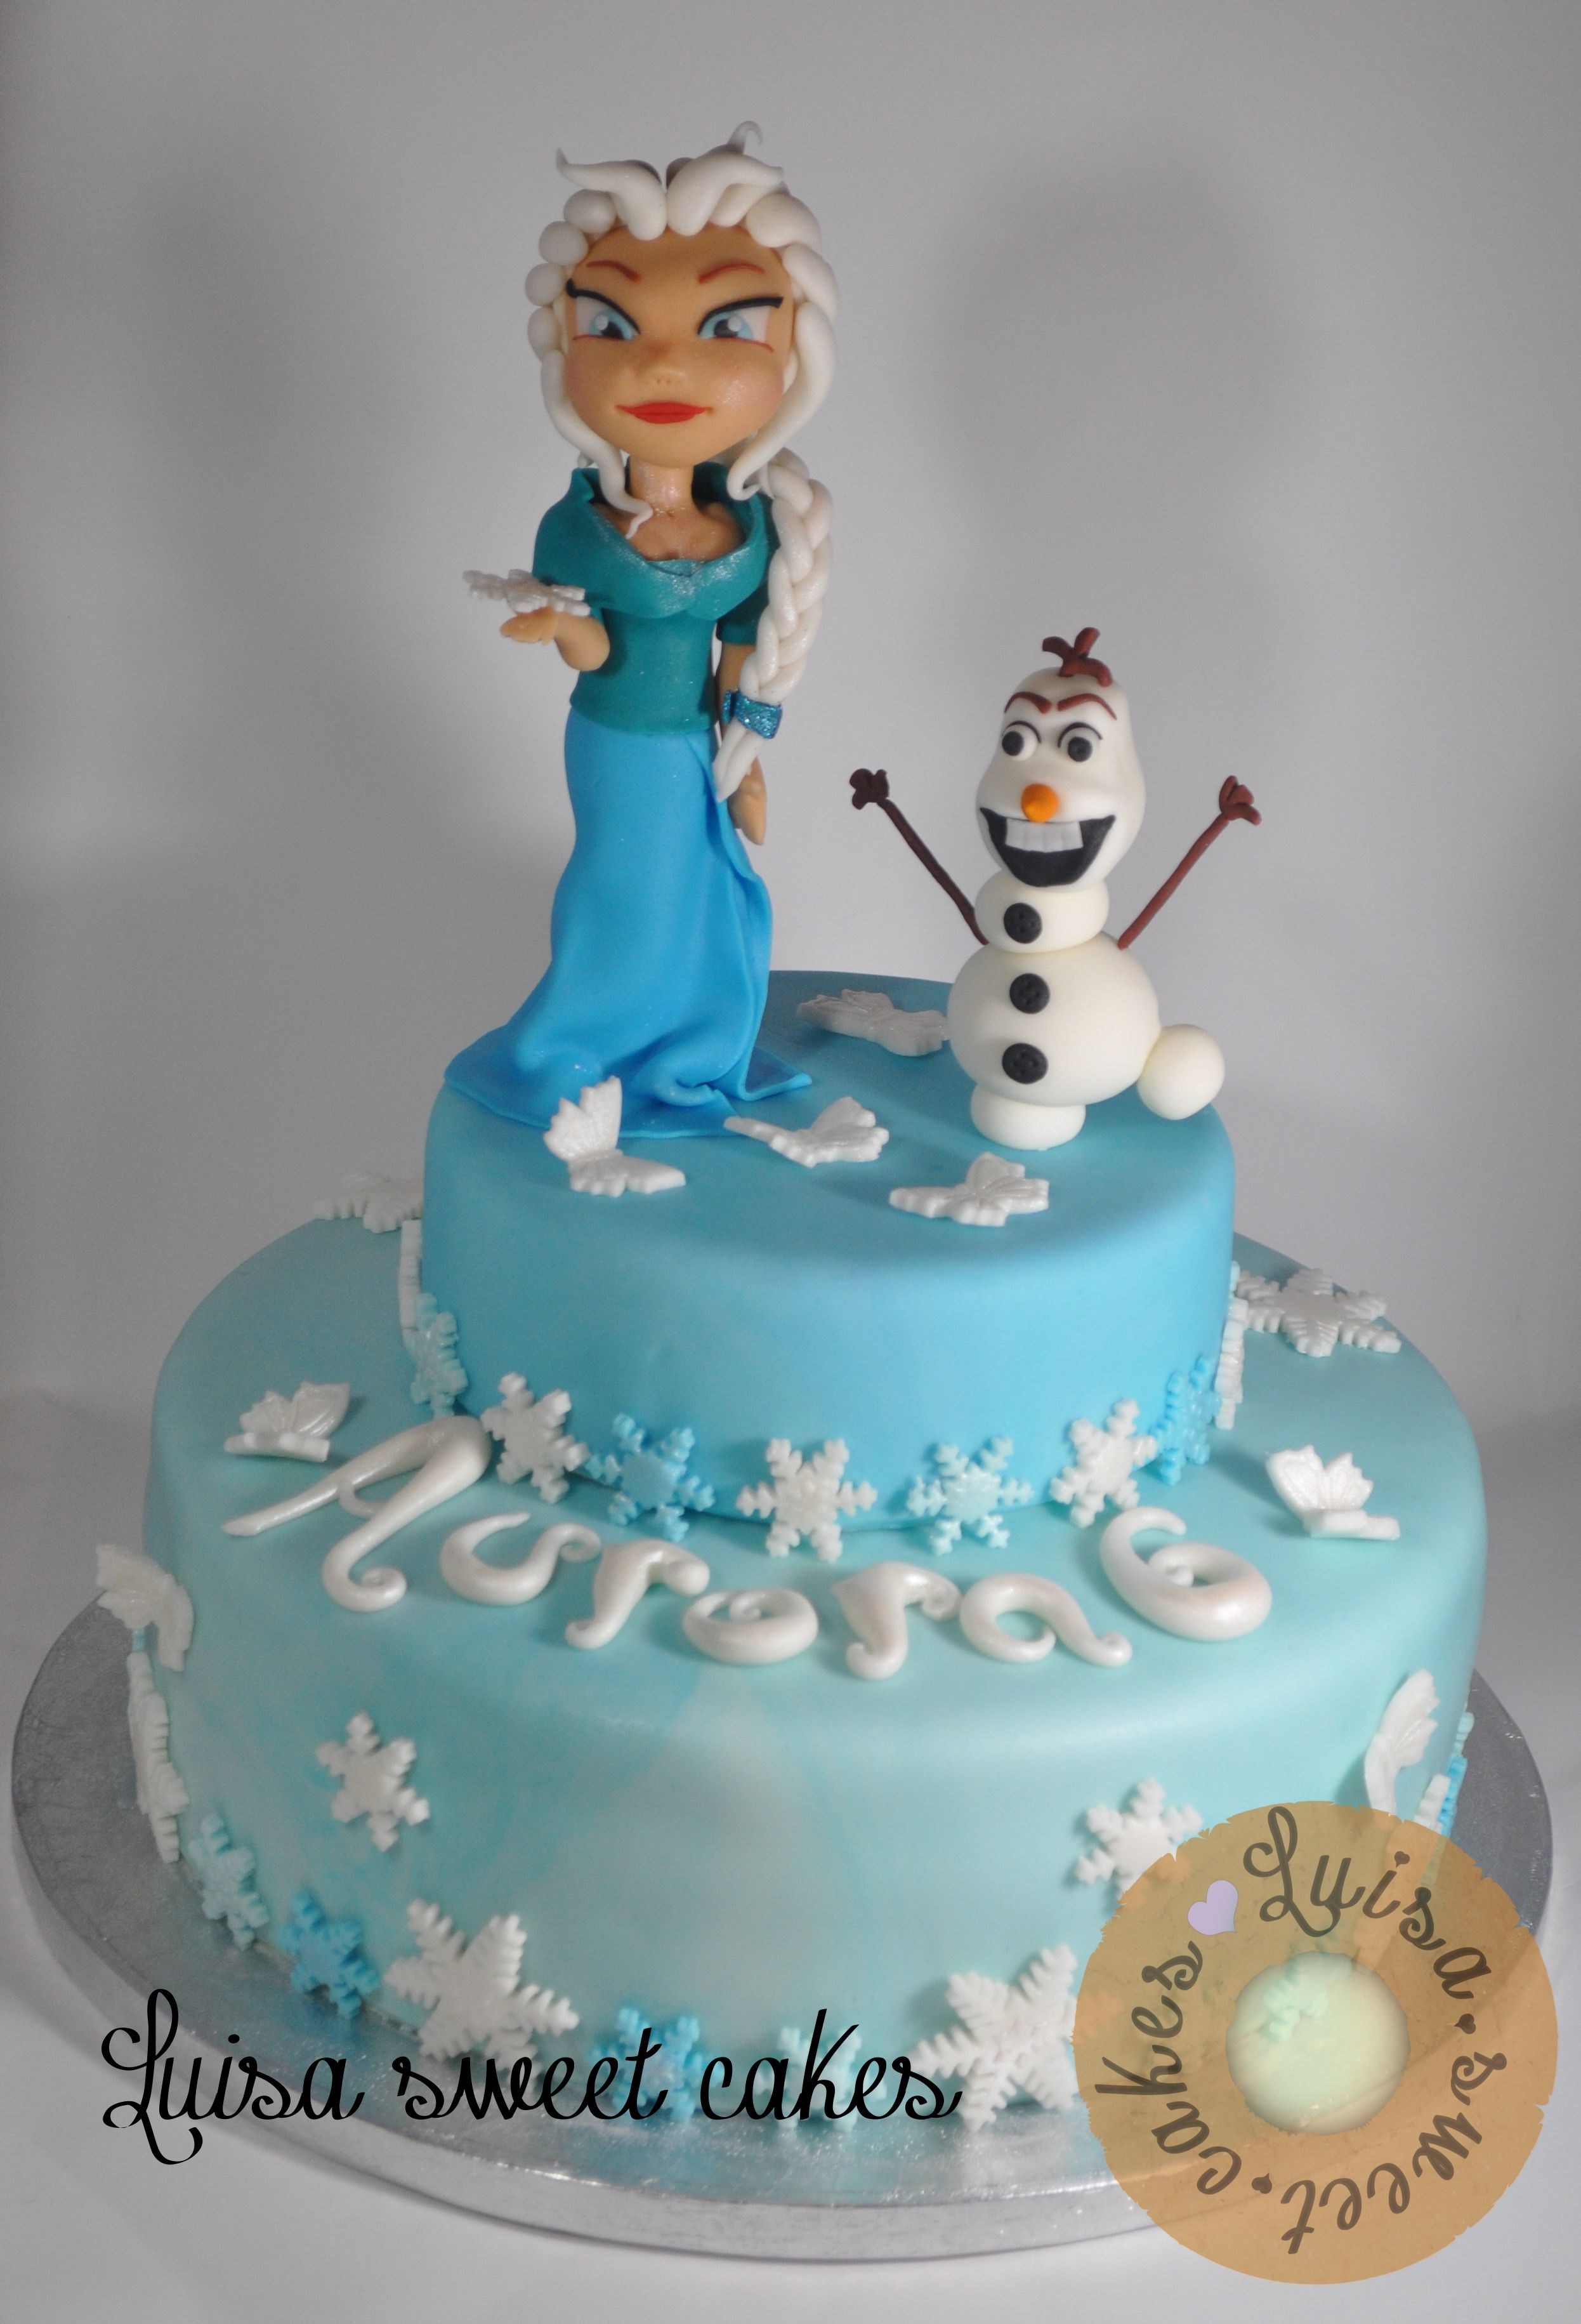 Frozen Disney -  -Elsa and olaf cake  made with sugar paste from luisasweetcakes